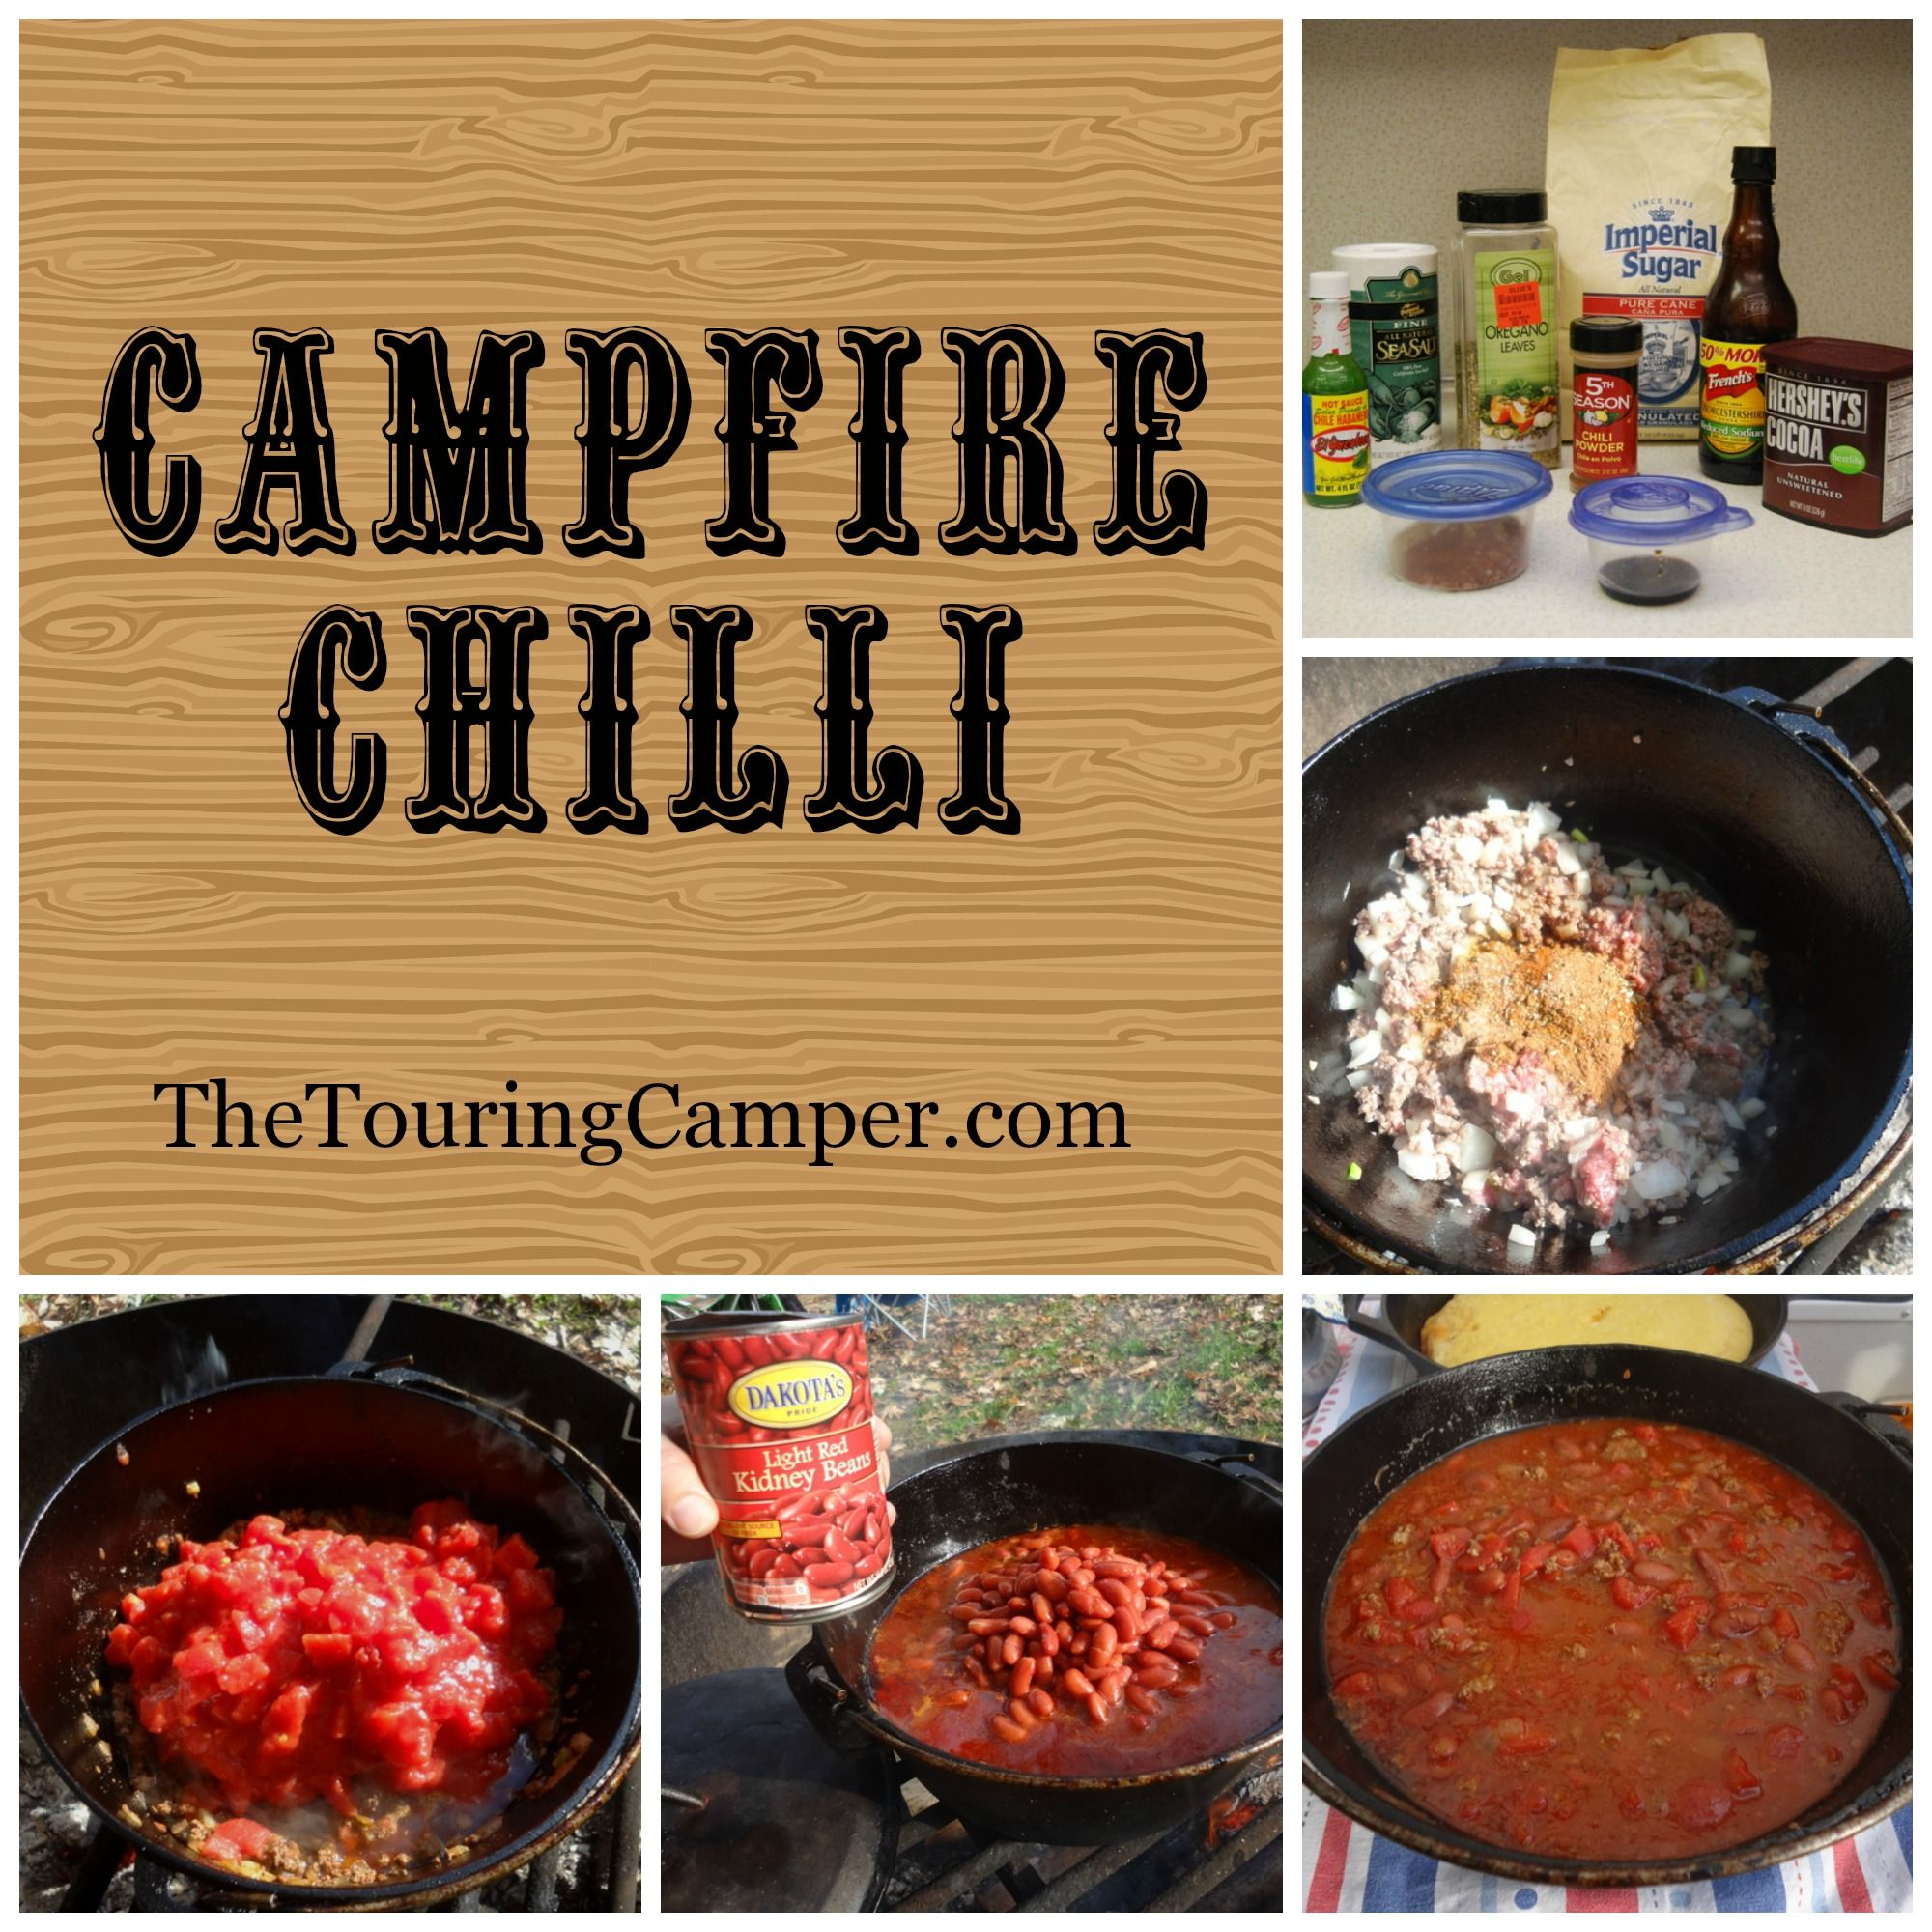 10 Camping Recipes And Ideas For Cooking Around The Campfire: Share Campfire Cooking Ideas